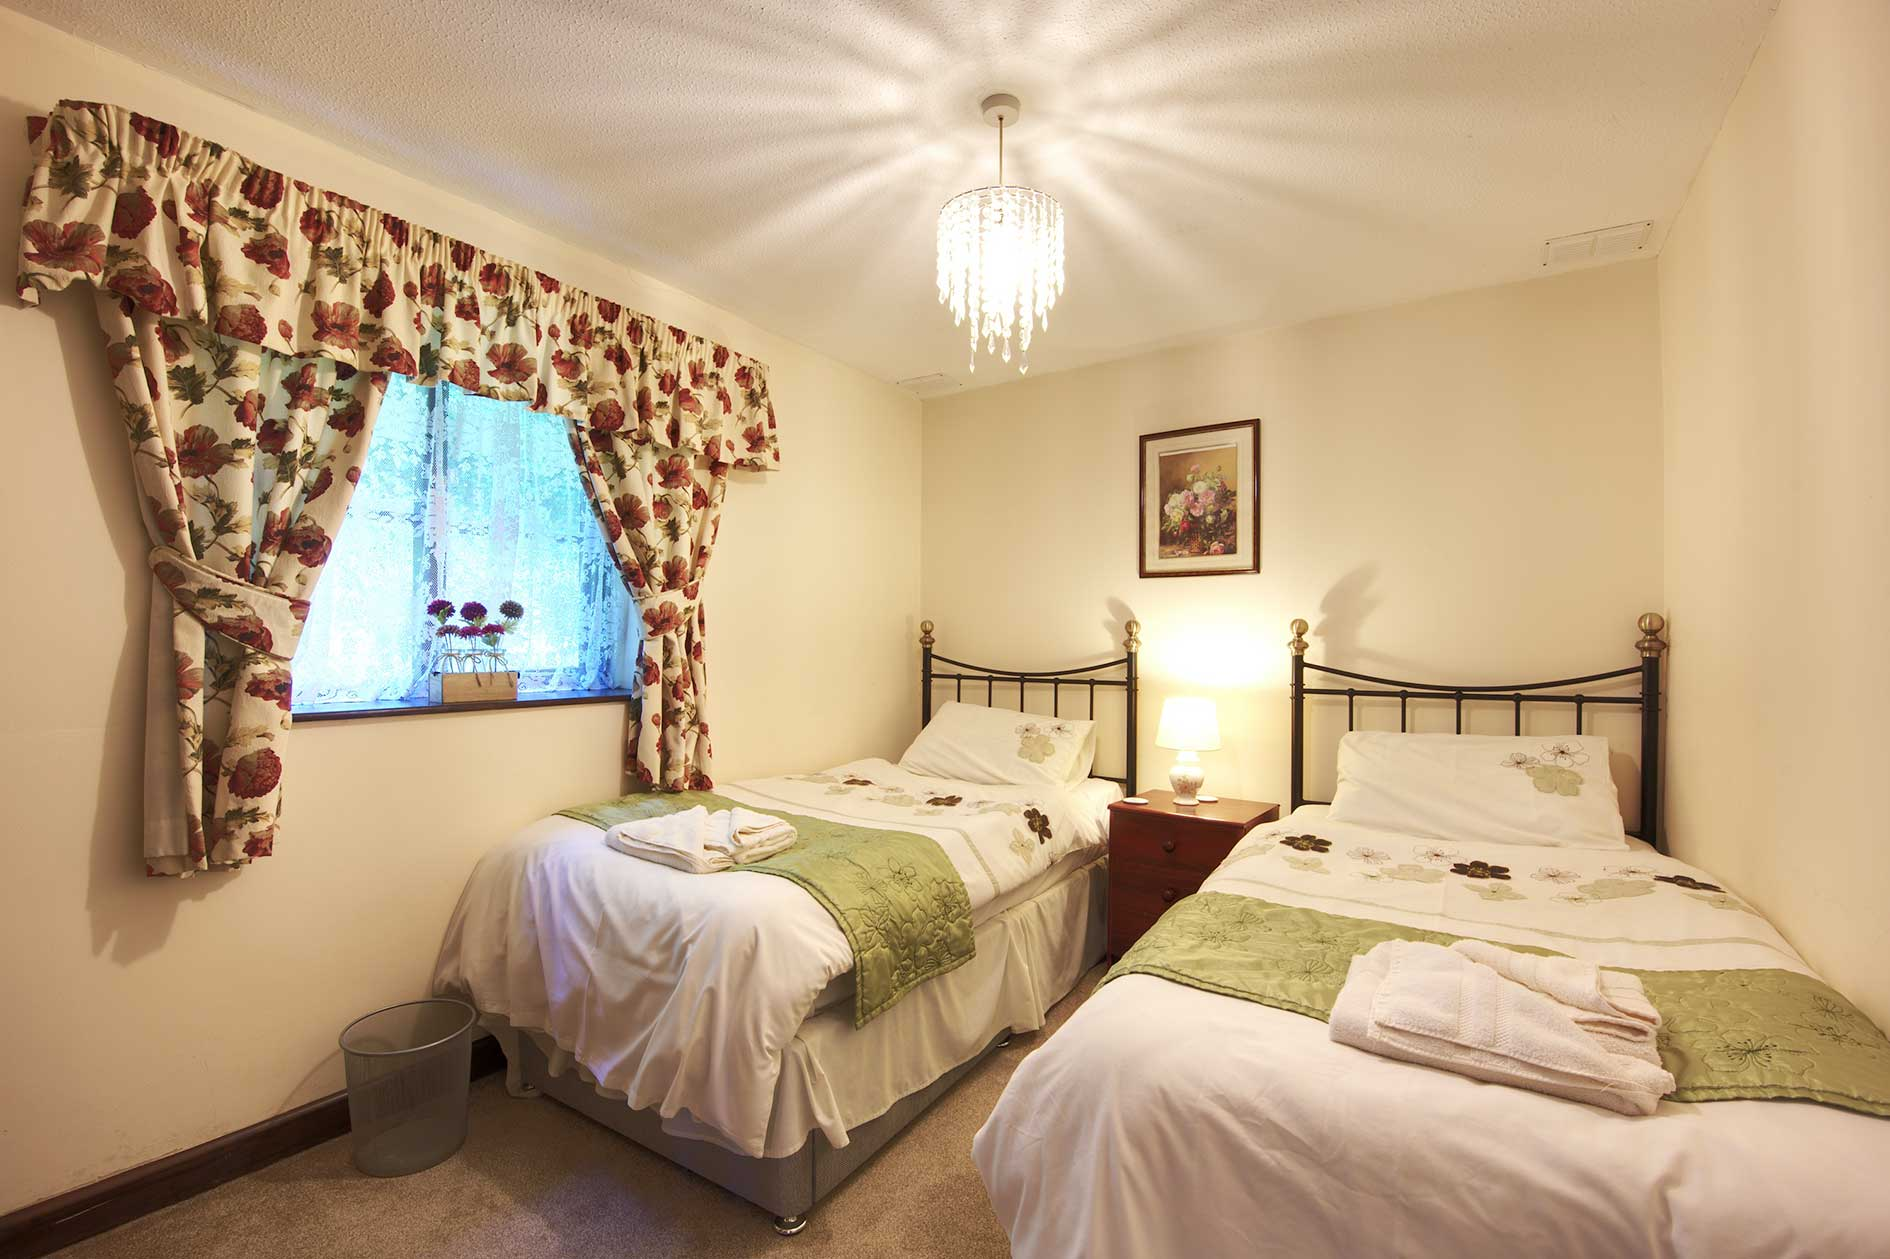 Light Bedroom With Two Single Beds With Black Metal Bedstead, White Linen And Red Floral Curtains